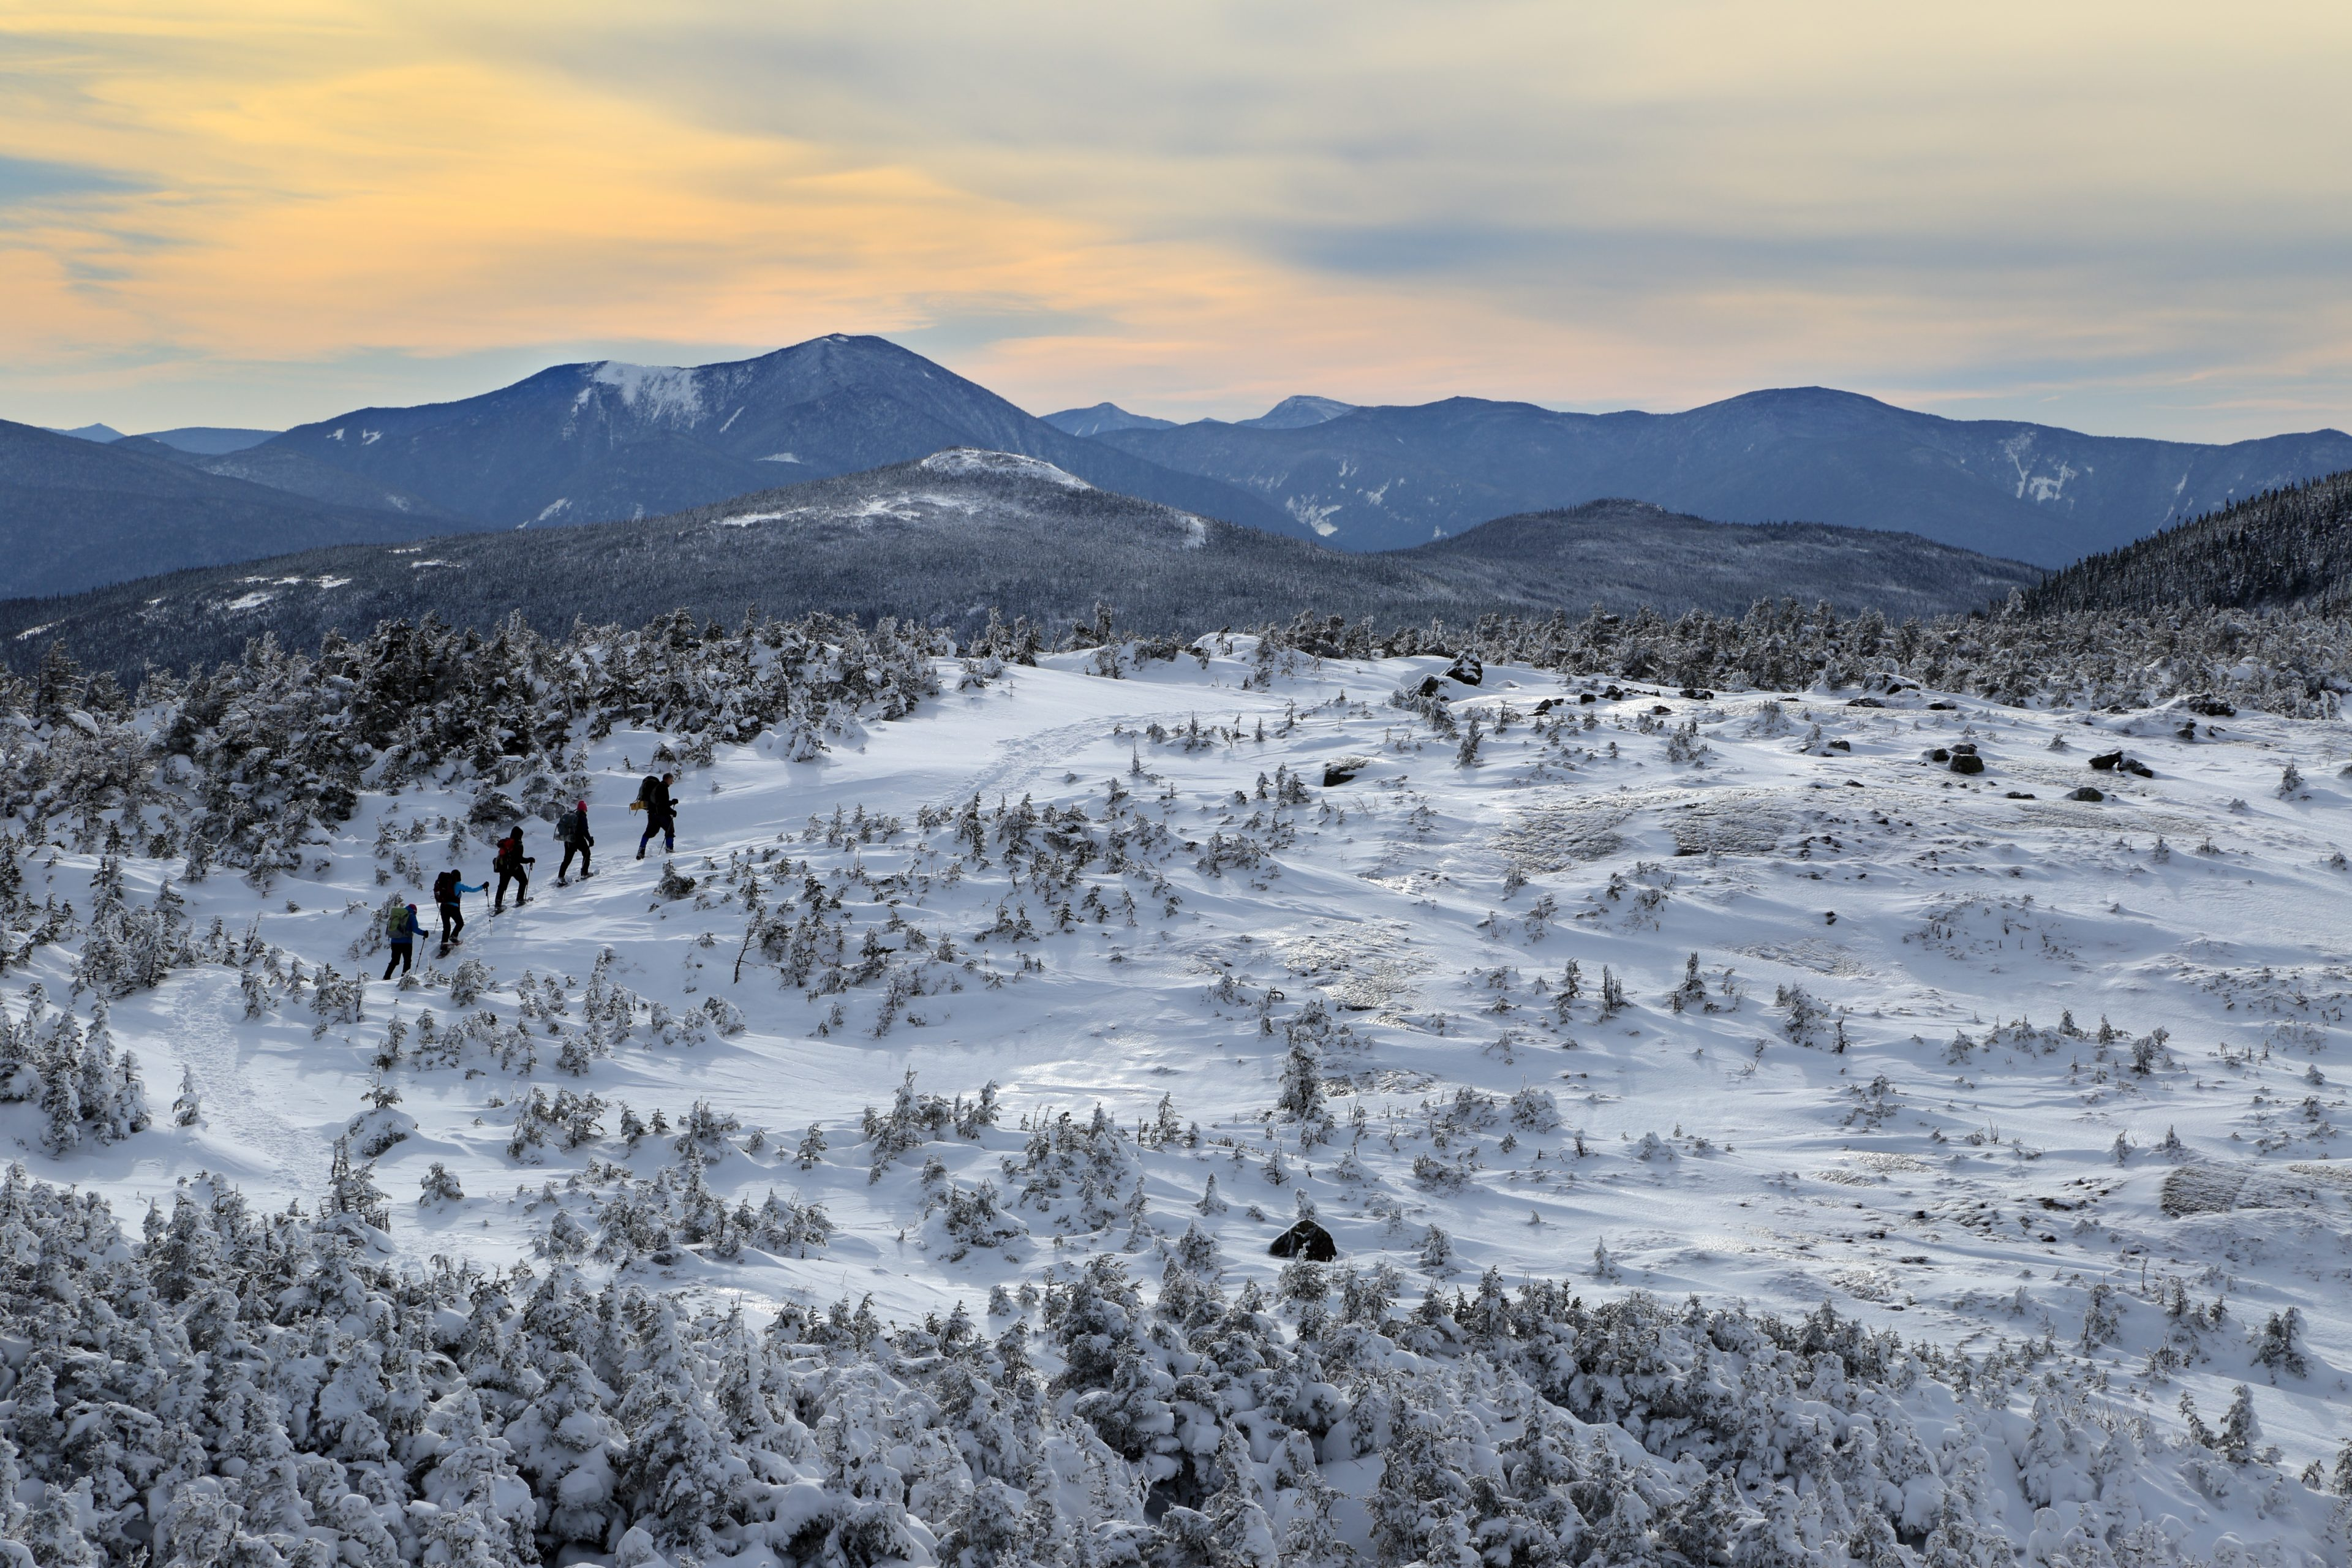 Mt. Pierce, White Mountain National Forest New Hampshire